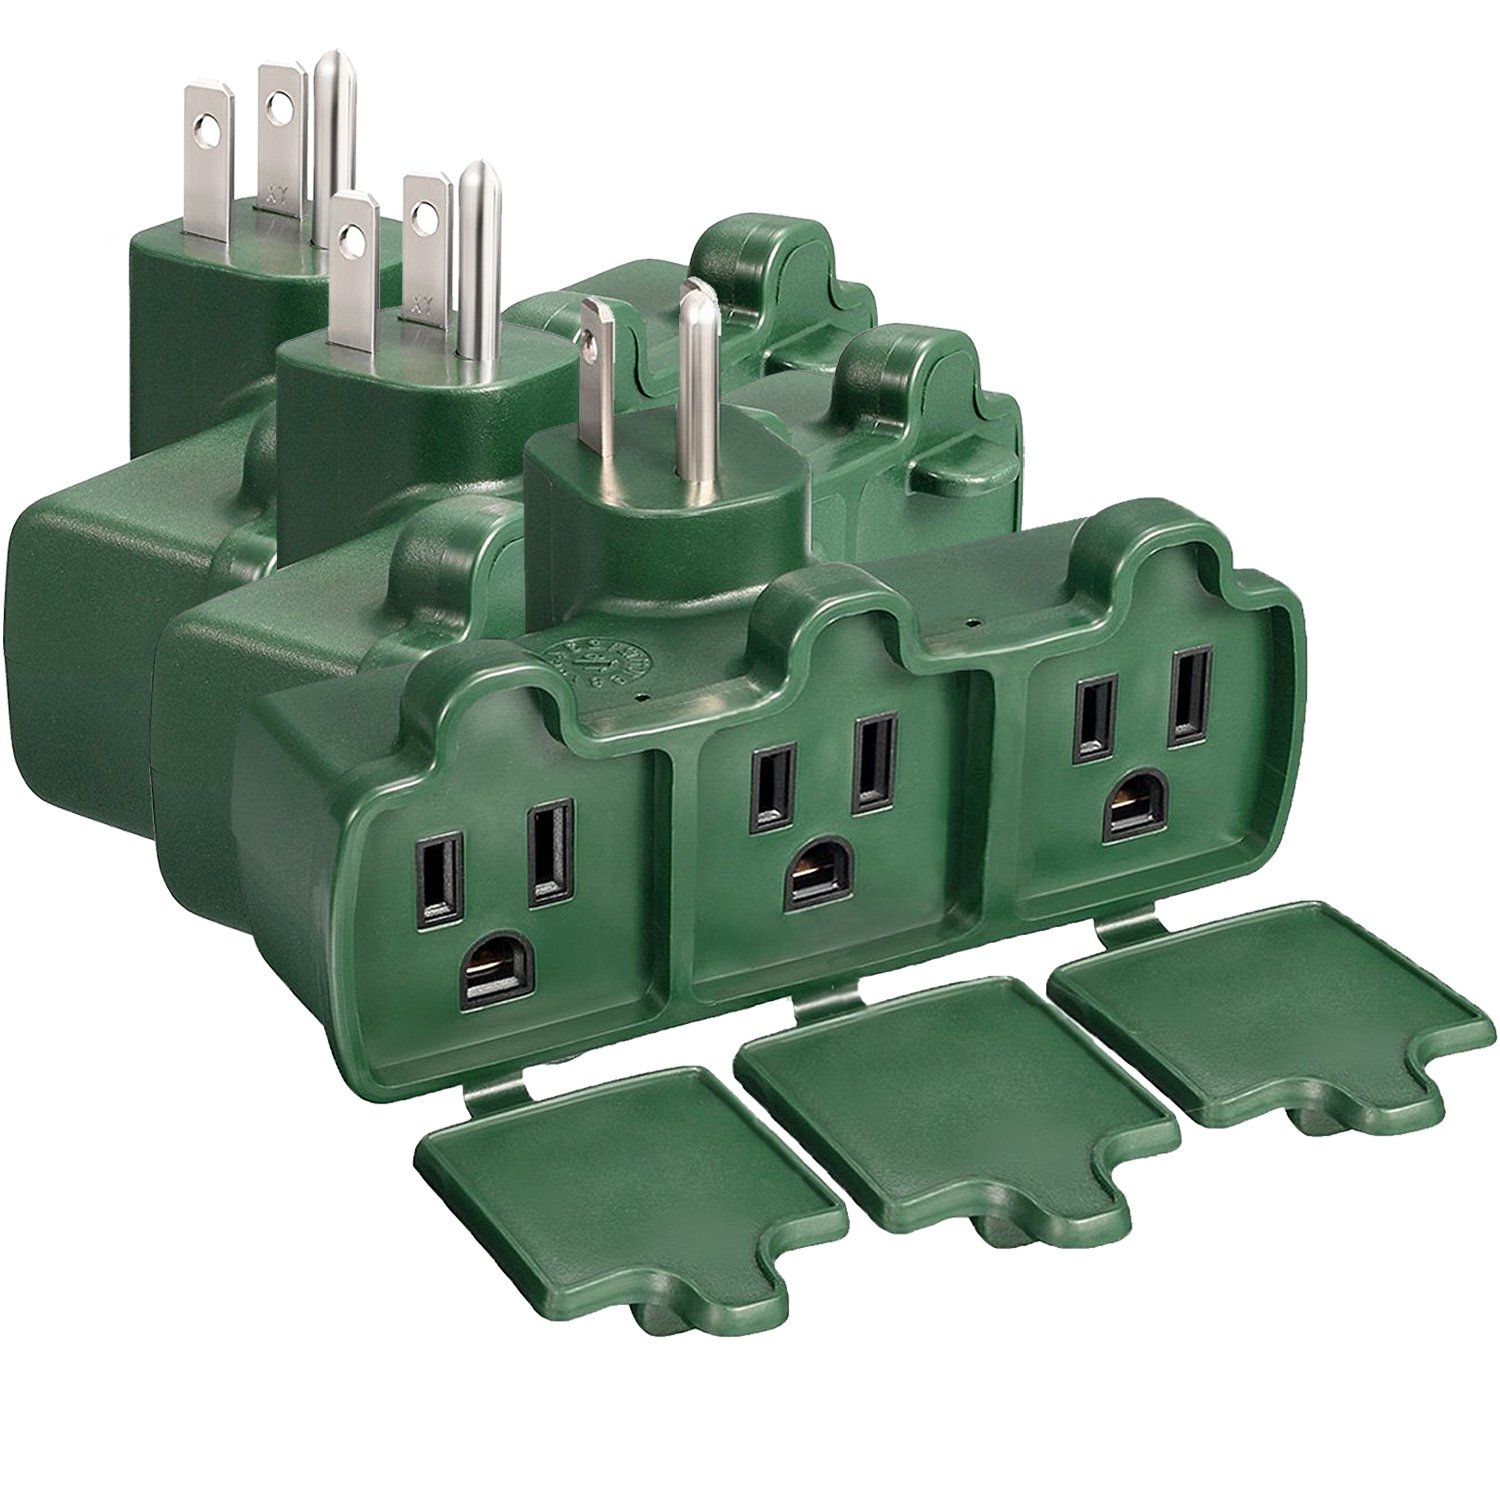 Fosmon 3 Outlet Wall Adapter 3 Pack, 3-Prong 125V AC Plug, ETL Listed, Outdoor, Weatherproof, Grounded, Heavy Duty Wall Tap (Green) Fosmon Technology